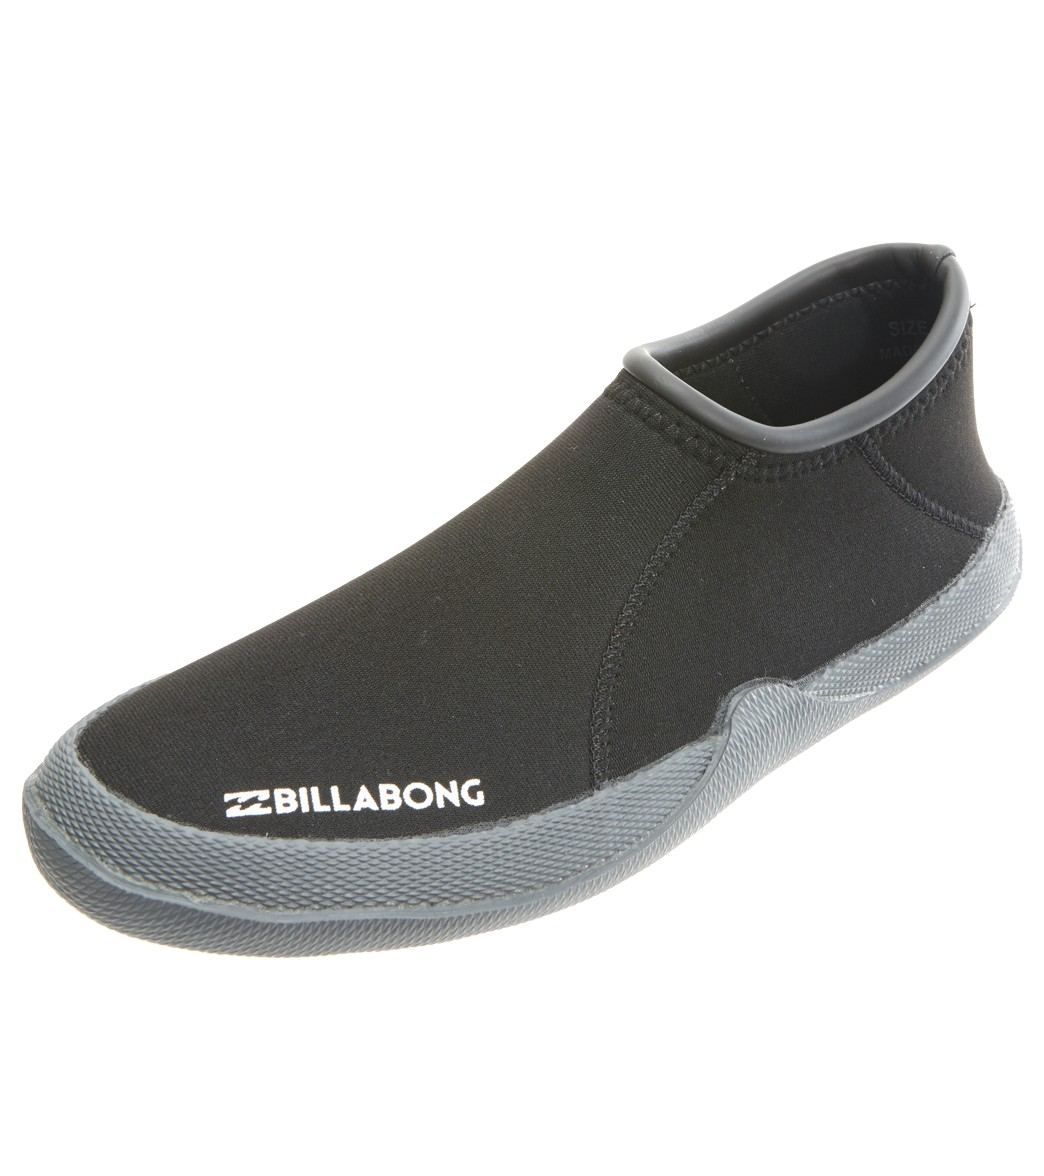 Billabong Men s Tahiti 2MM Reef Walk Wetsuit Boot at SwimOutlet.com 2406cfba1